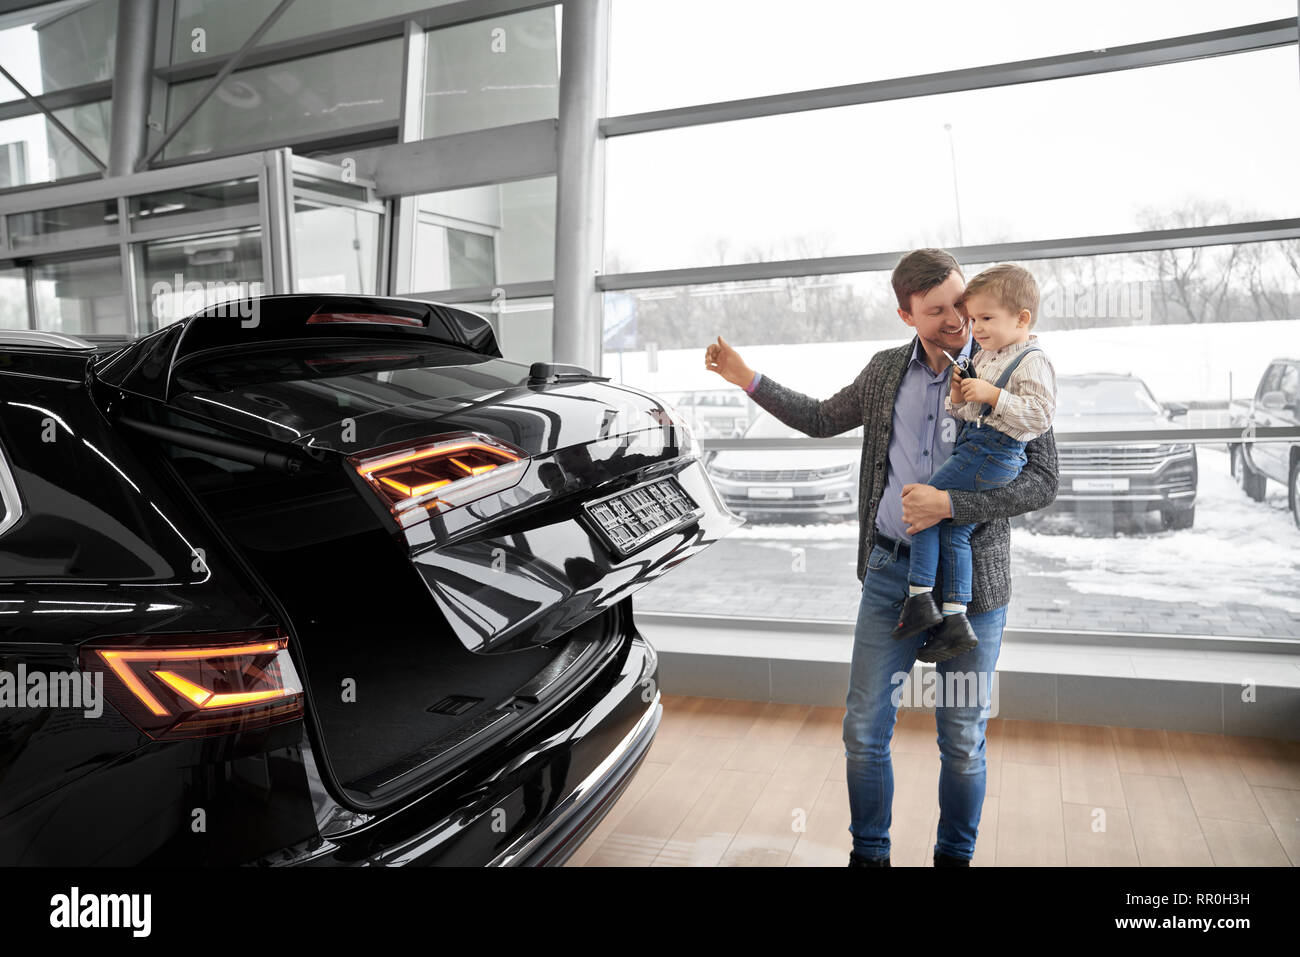 Parent and child observing new expensive automobile in modern car dealership showroom. Happy father standing, holding son on hands, closing car trunk of black vehicle. - Stock Image